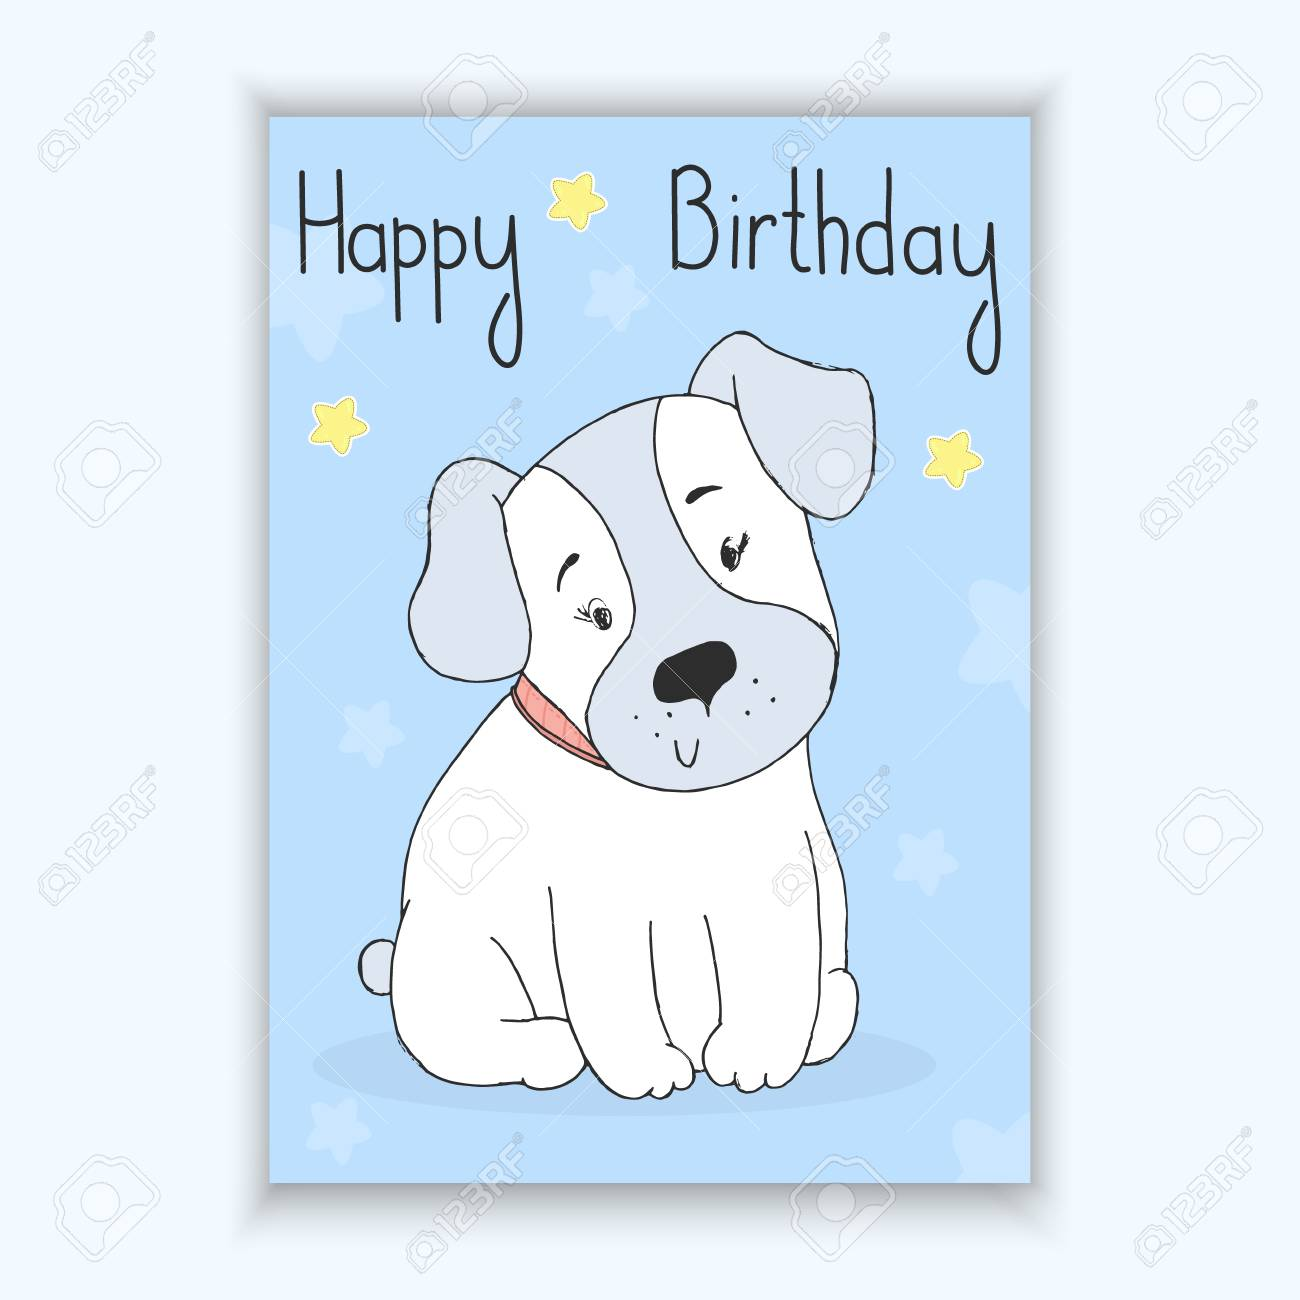 Happy Birthday Card With Hand Drawn Cute Cartoon Dog Vector